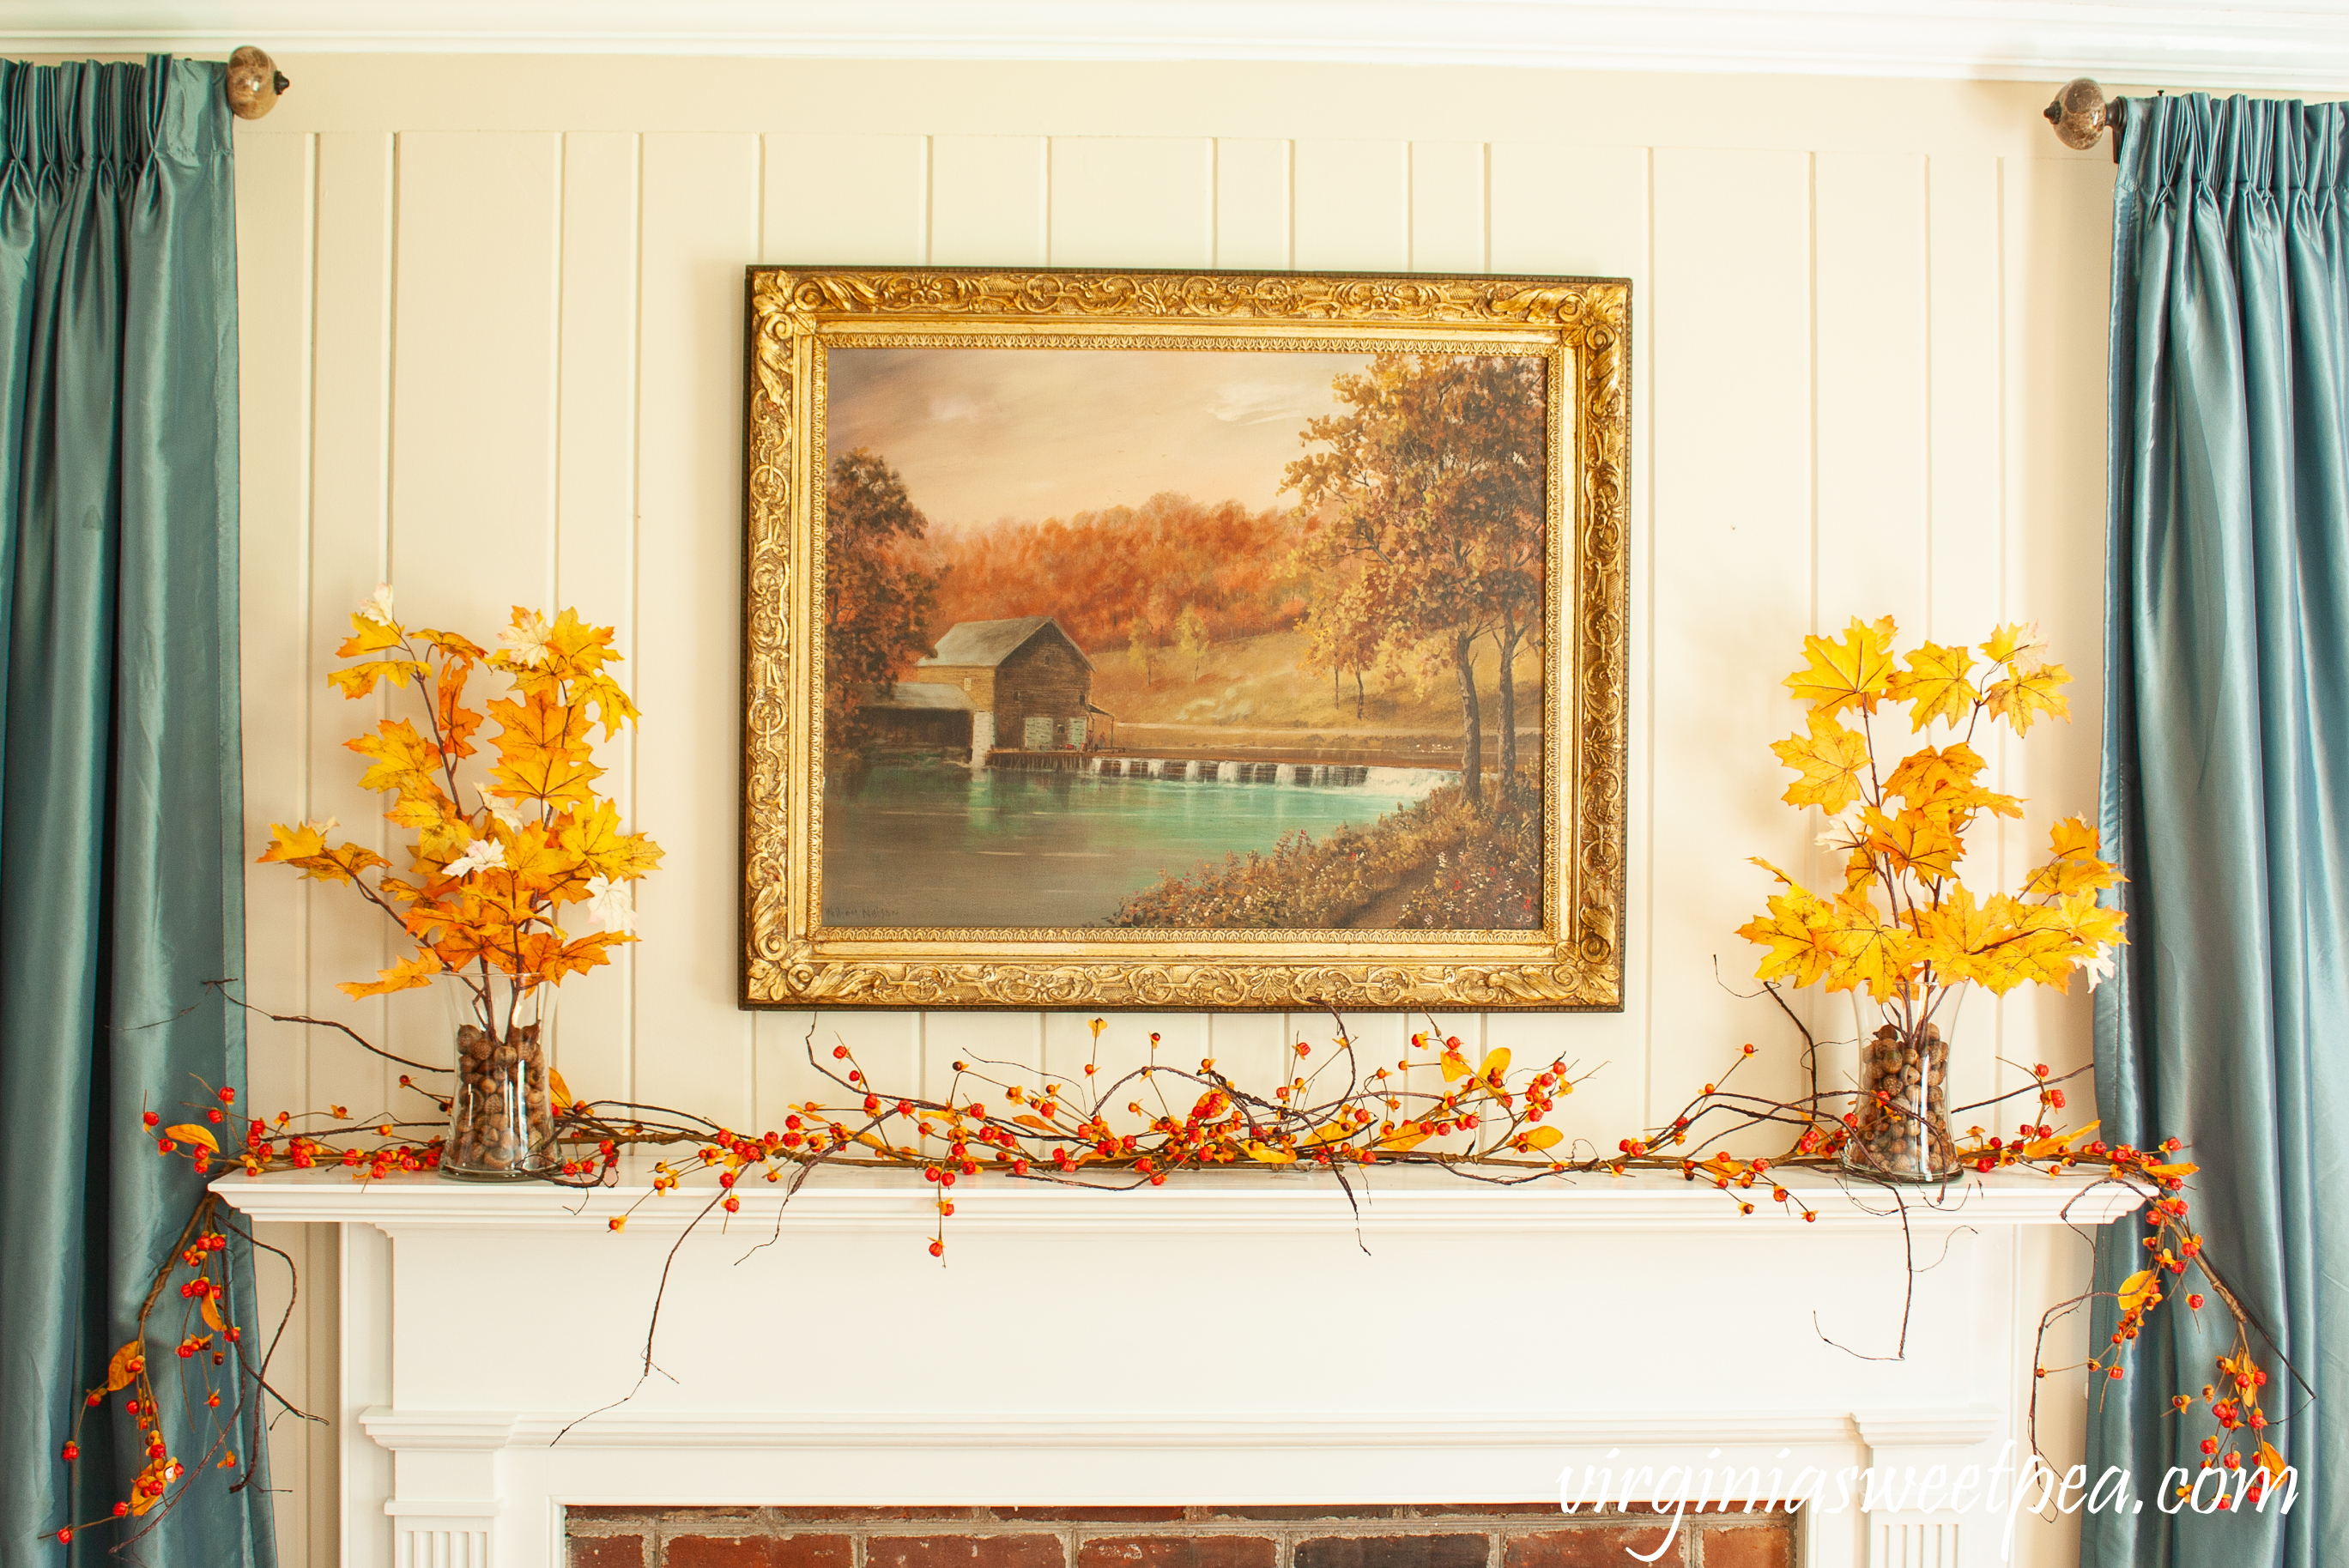 Traditional Fall Mantel - A mantel decorated with a painting of a mill in Sussex County, NJ by William Miller along with fall foliage and bittersweet.